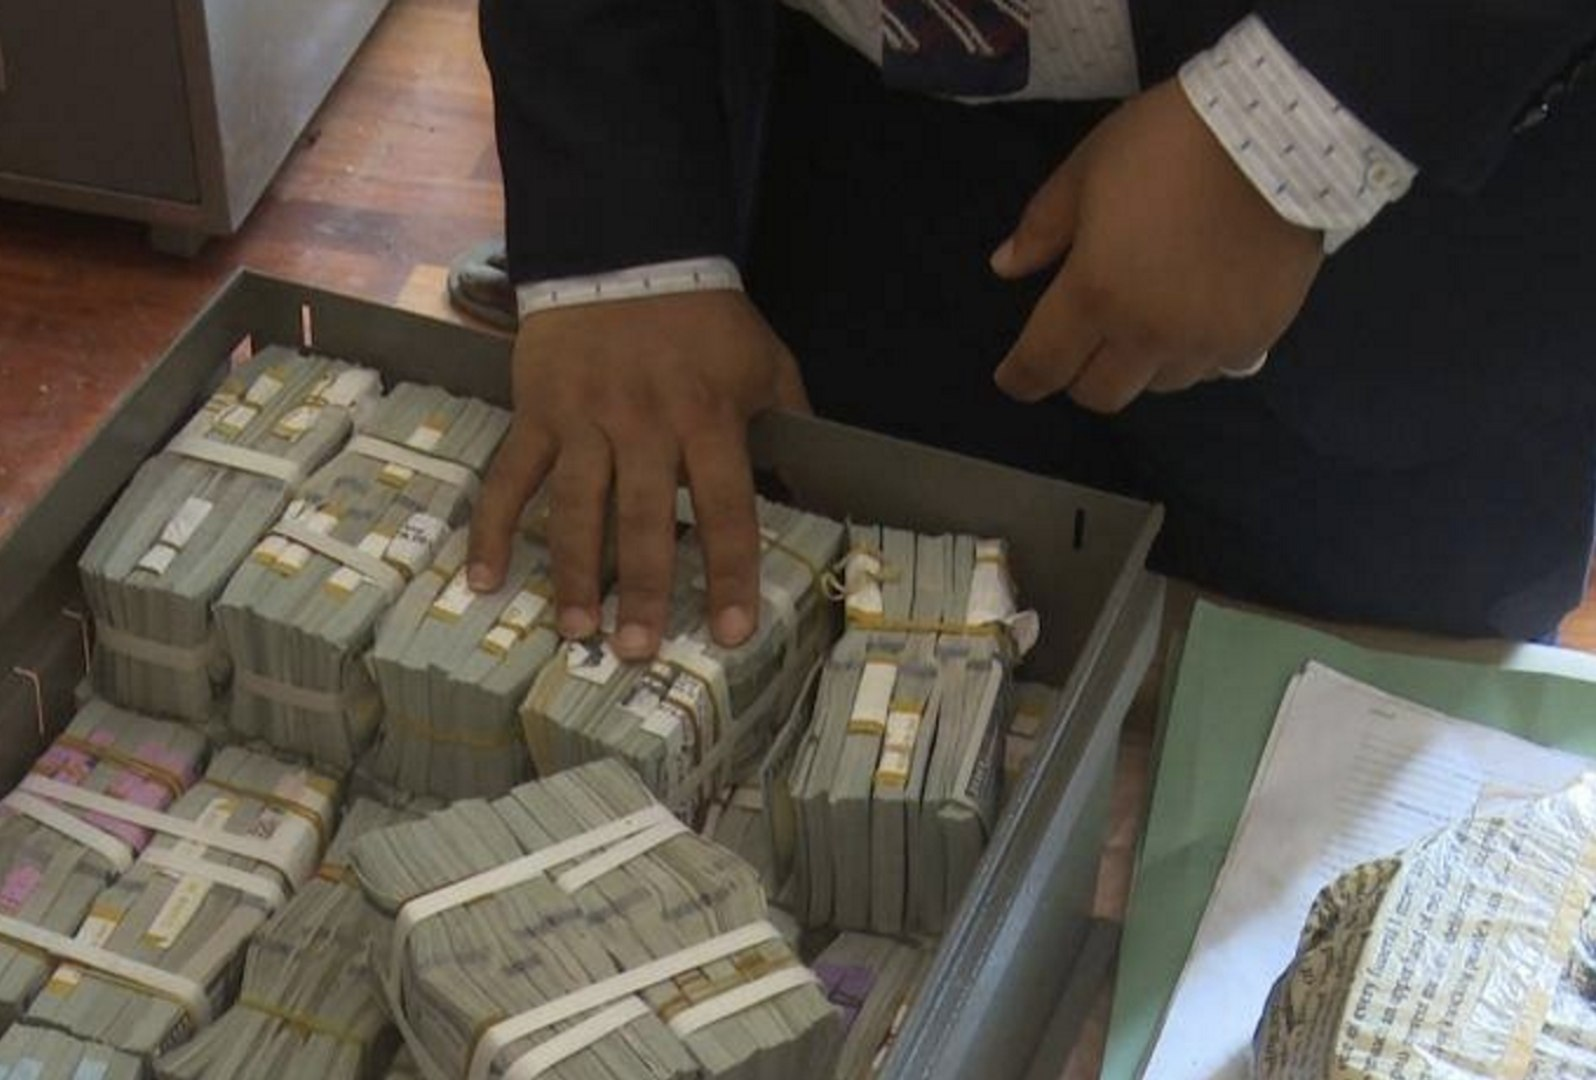 Nigerian Financial Crime Agency Finds $43 Million in Lagos Flat